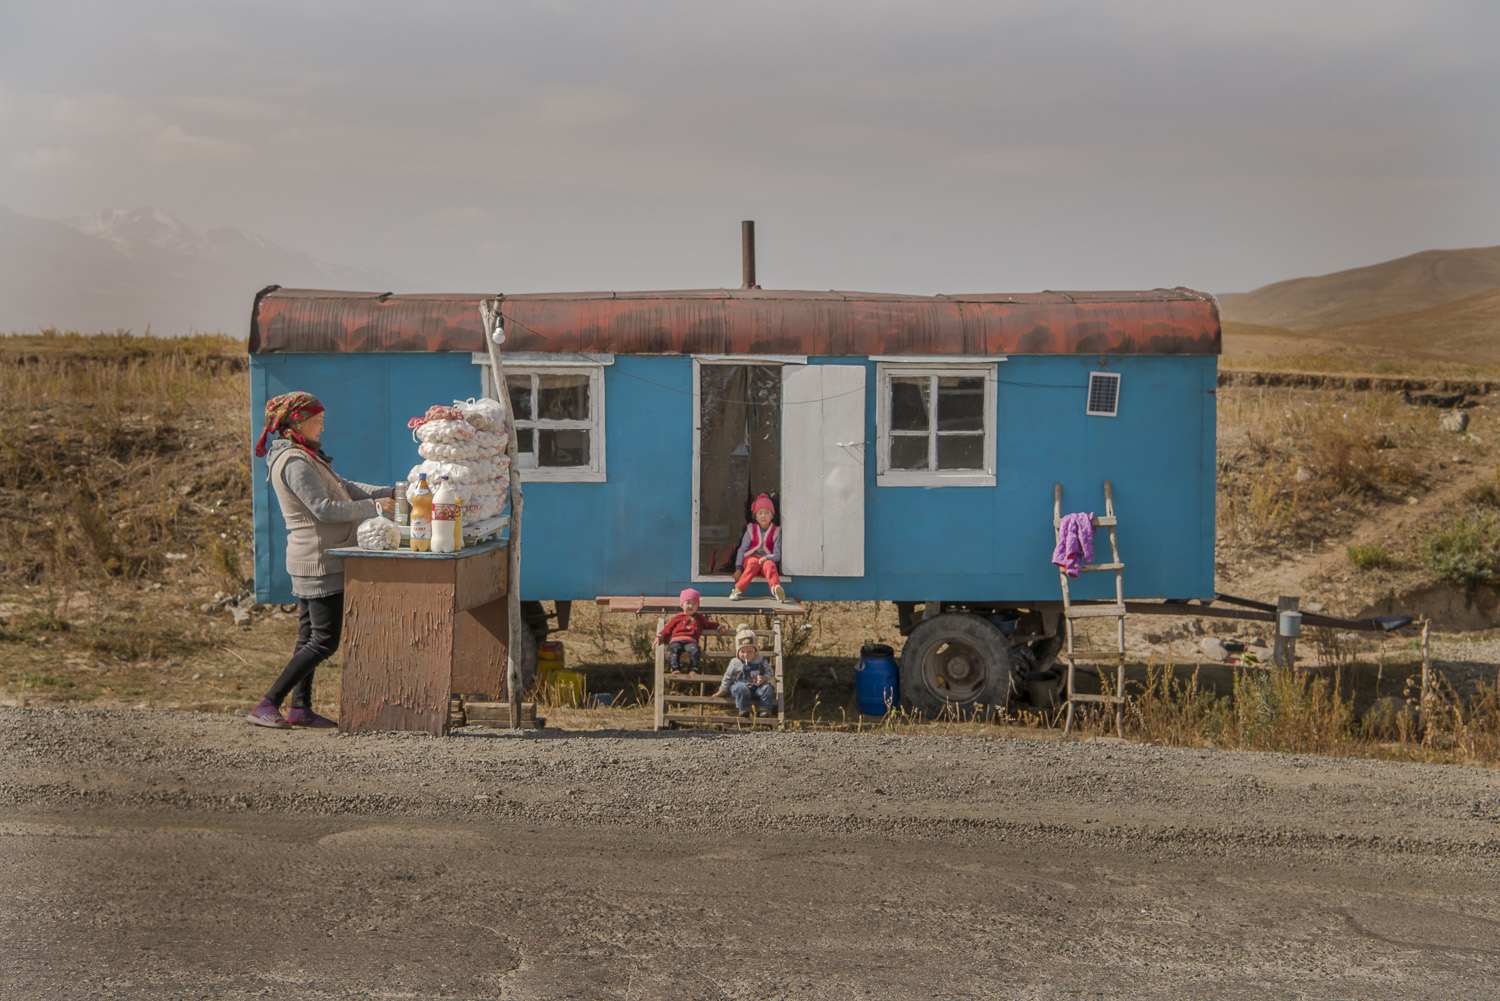 old-railway-carriage-roadside-stalls-market-kyrgyzstan-travel-photography-groceries-osh.jpg